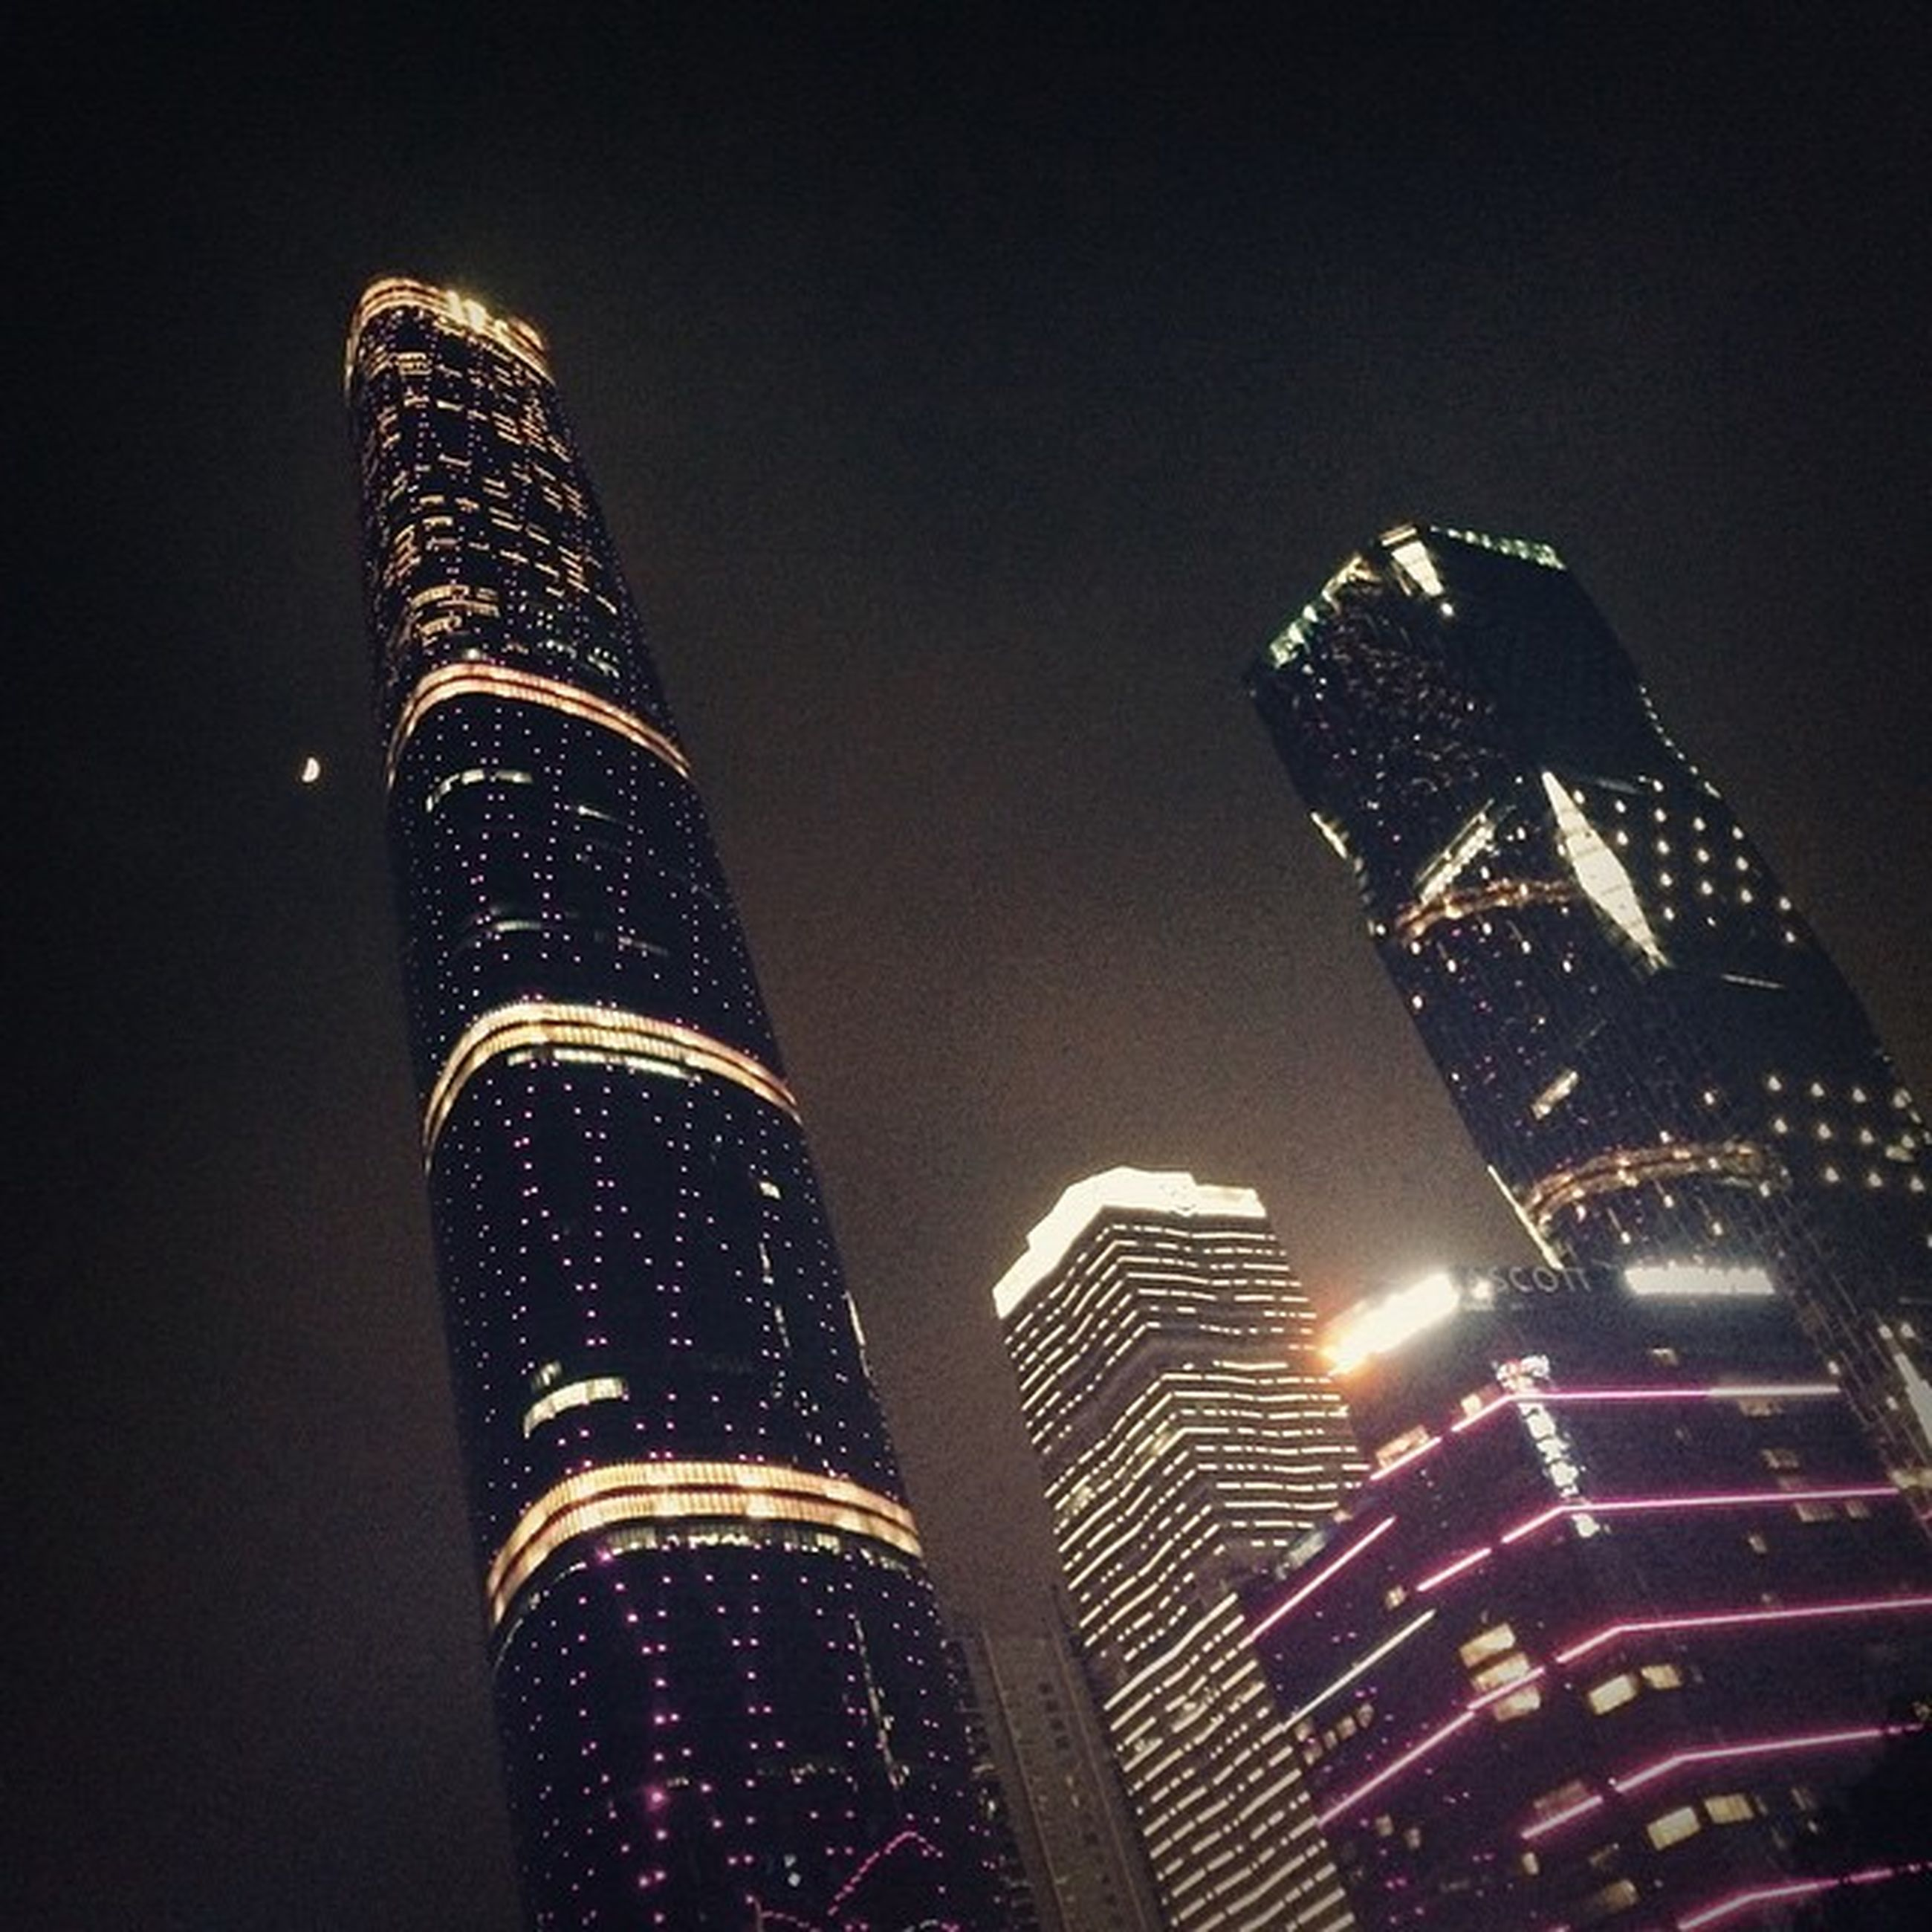 architecture, built structure, low angle view, building exterior, tall - high, night, tower, illuminated, skyscraper, city, modern, sky, travel destinations, famous place, office building, capital cities, tall, international landmark, no people, outdoors